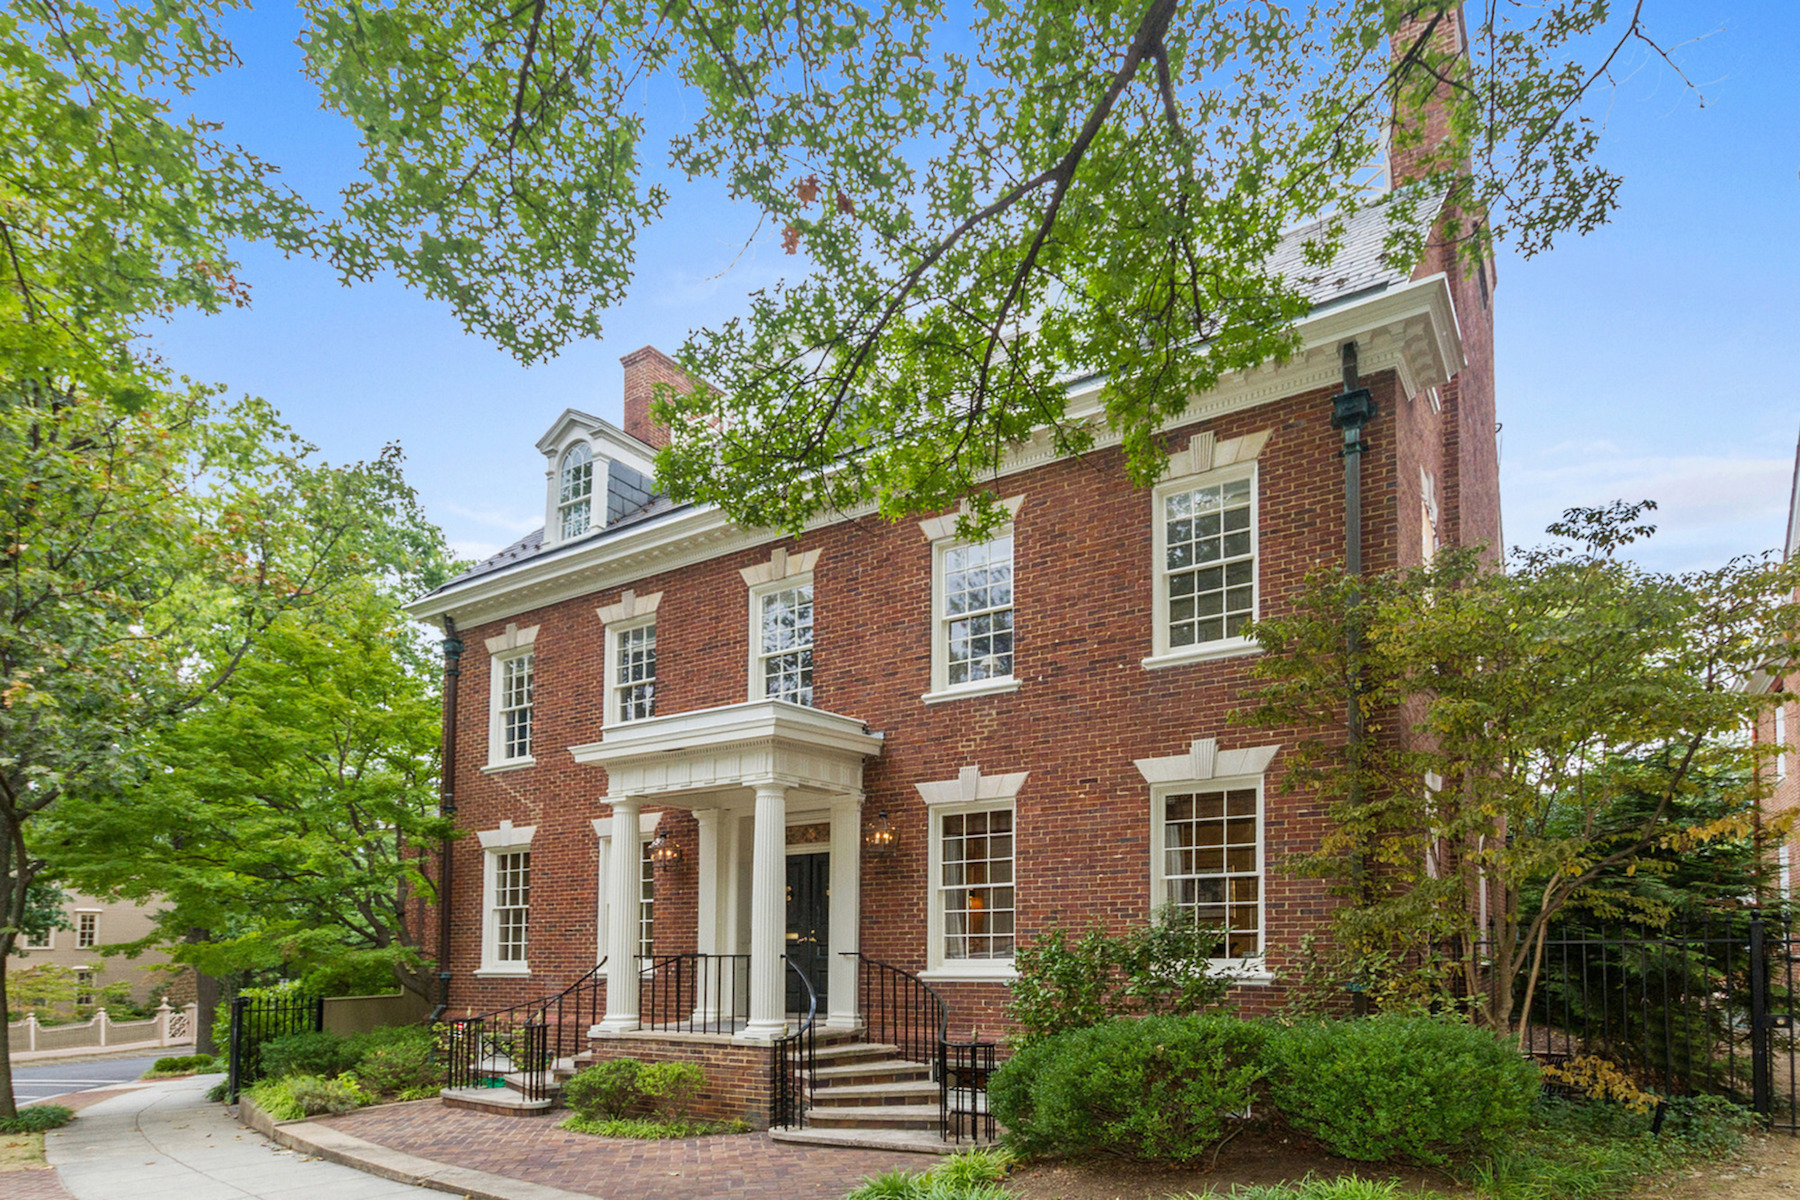 Single Family Home for Sale at Kalorama 6 Kalorama Circle Nw Washington, District Of Columbia 20008 United States